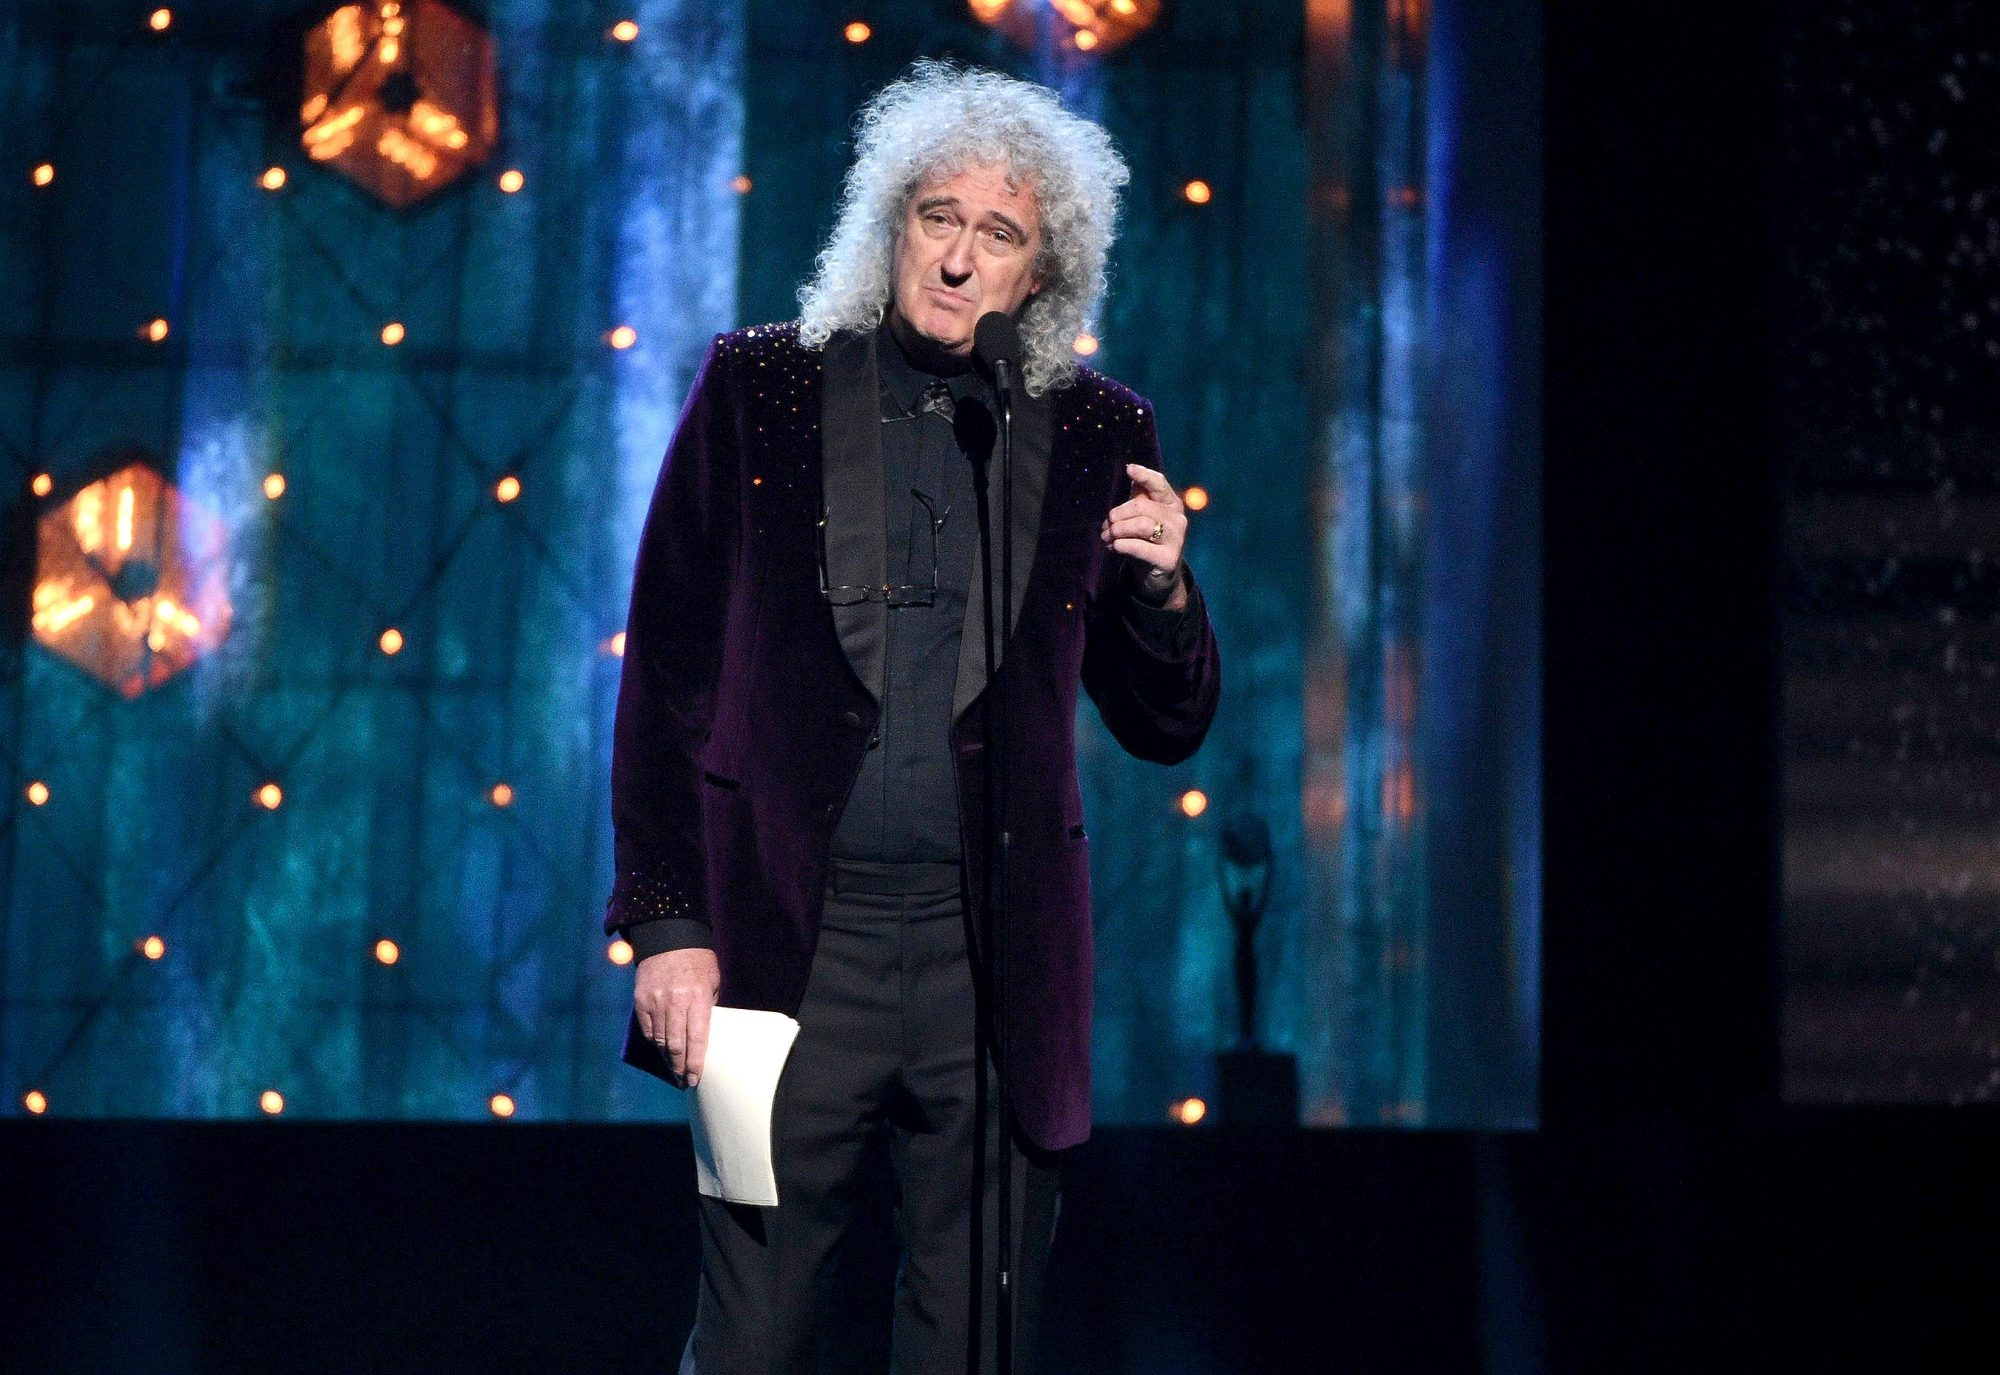 2019 Rock and Roll Hall of Fame Induction Ceremony - Show, New York, USA - 29 Mar 2019